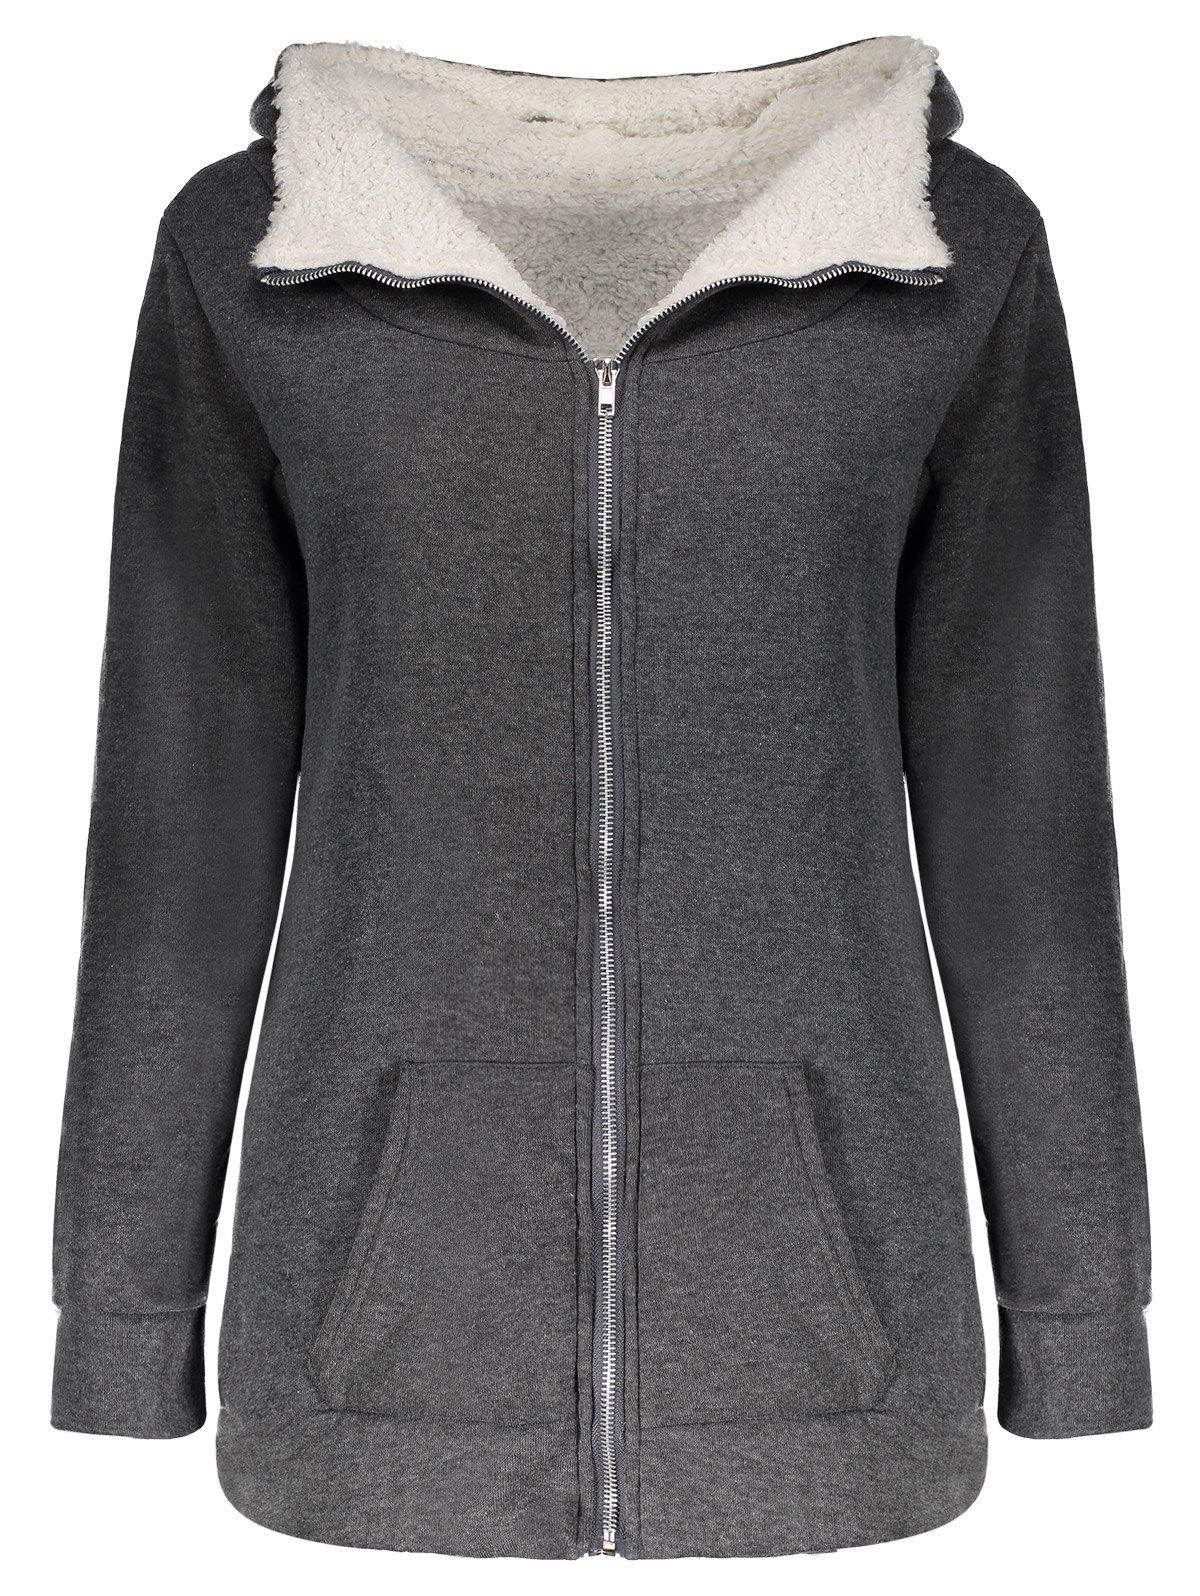 Casual Hooded Long Sleeve Flocky Zippered Pocket Design Womens CoatWOMEN<br><br>Size: ONE SIZE(FIT SIZE XS TO M); Color: GRAY; Material: Cotton,Polyester; Type: Wide-waisted; Shirt Length: Long; Sleeve Length: Full; Collar: Hooded; Pattern Type: Patchwork; Embellishment: Pockets; Style: Casual; Weight: 0.391KG; Package Contents: 1 x Coat;